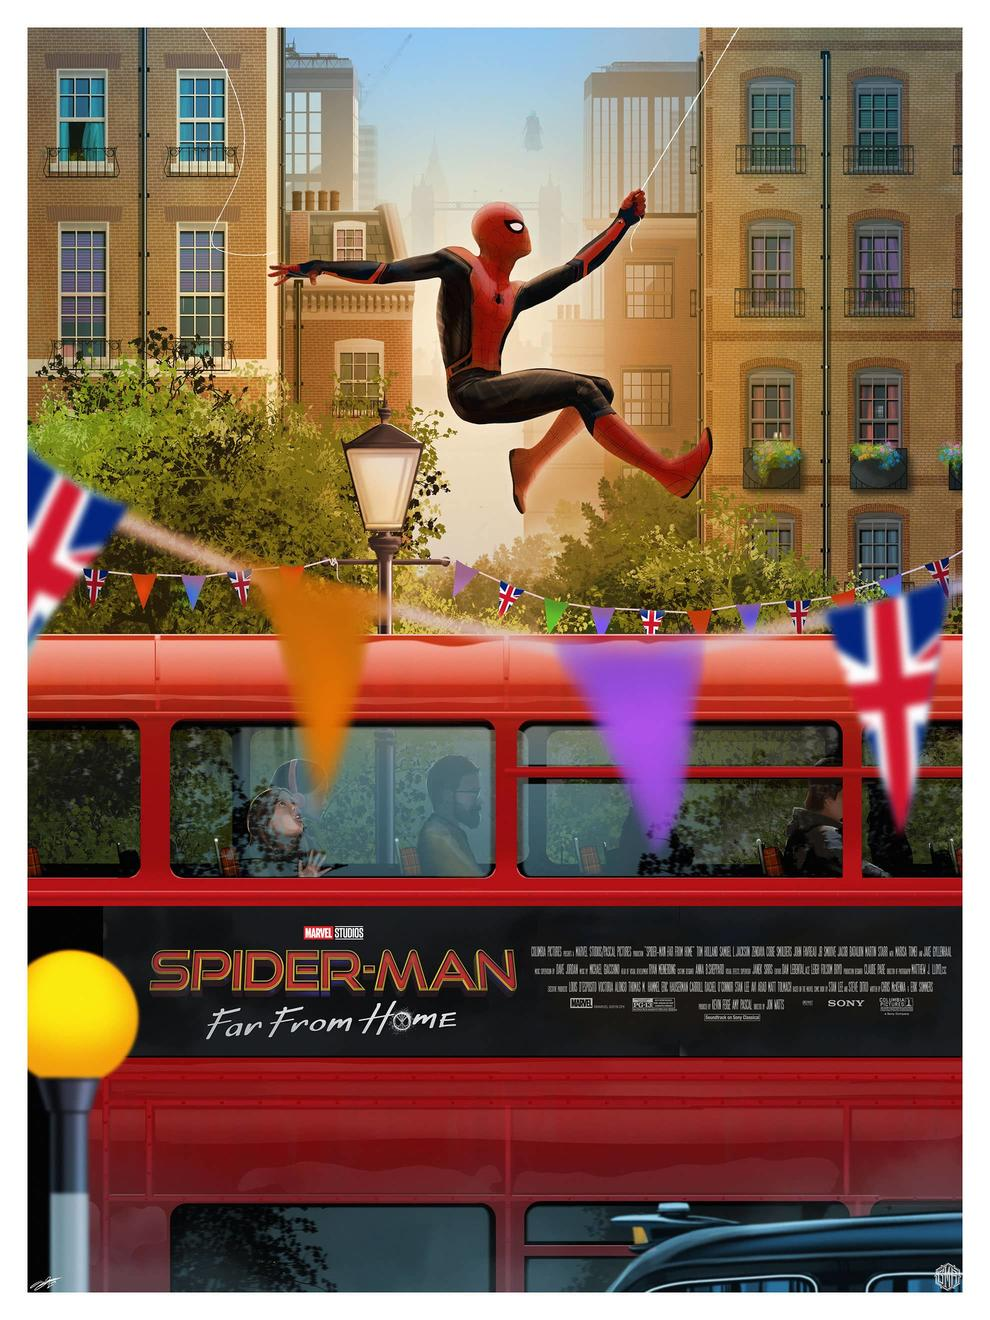 Spider-Man Far From Home by Andy Fairhurst